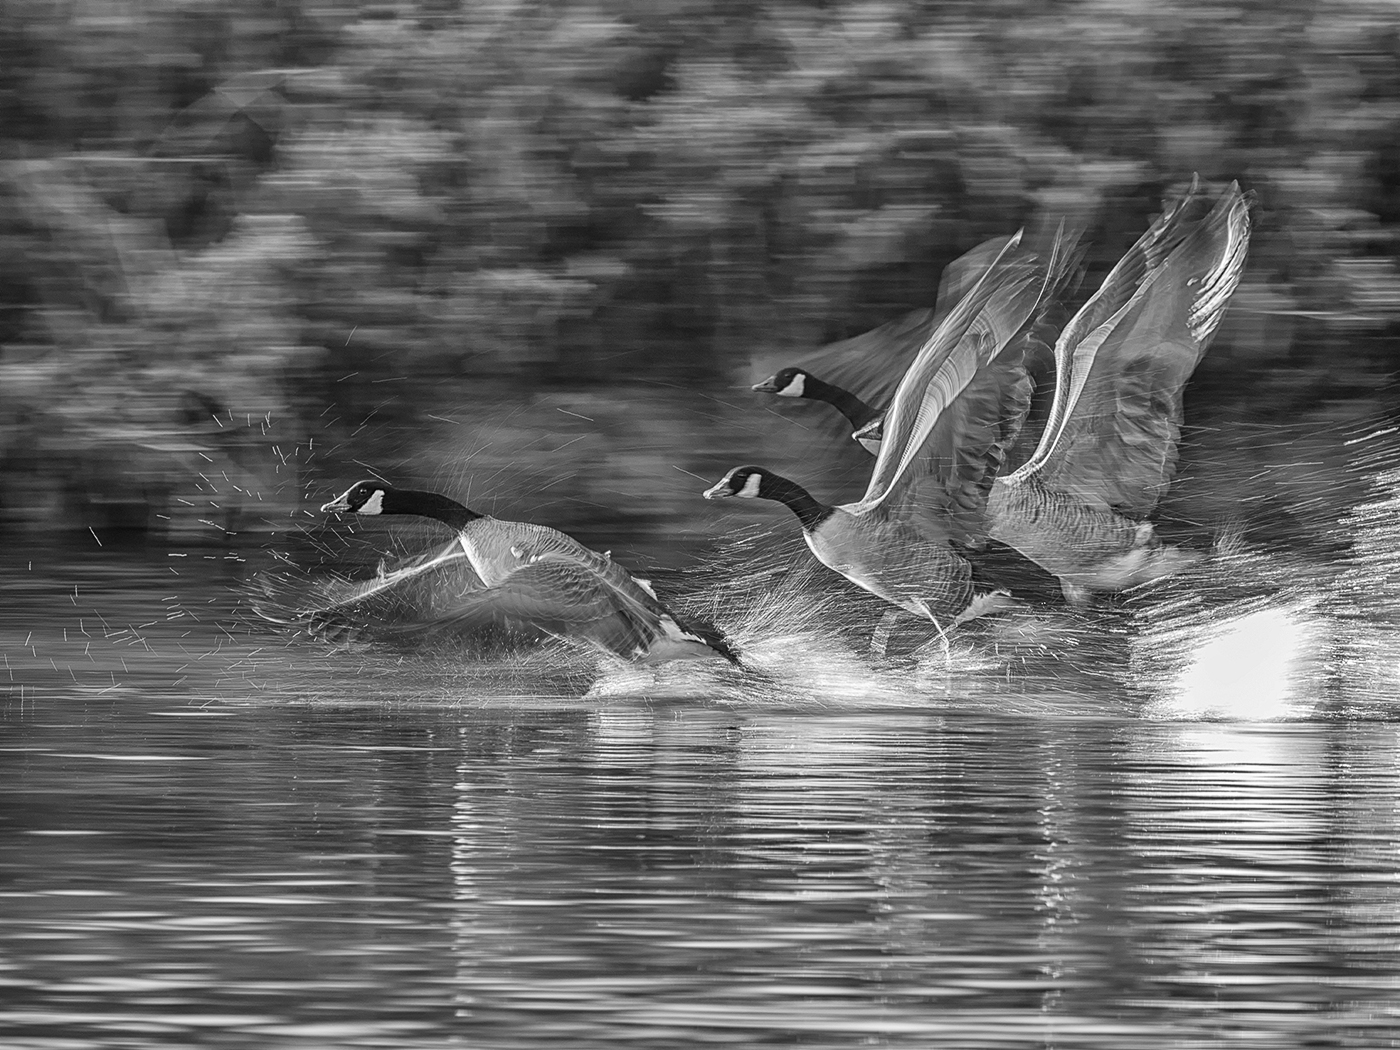 First 'Canada Geese lift-off' by Mark Cooper